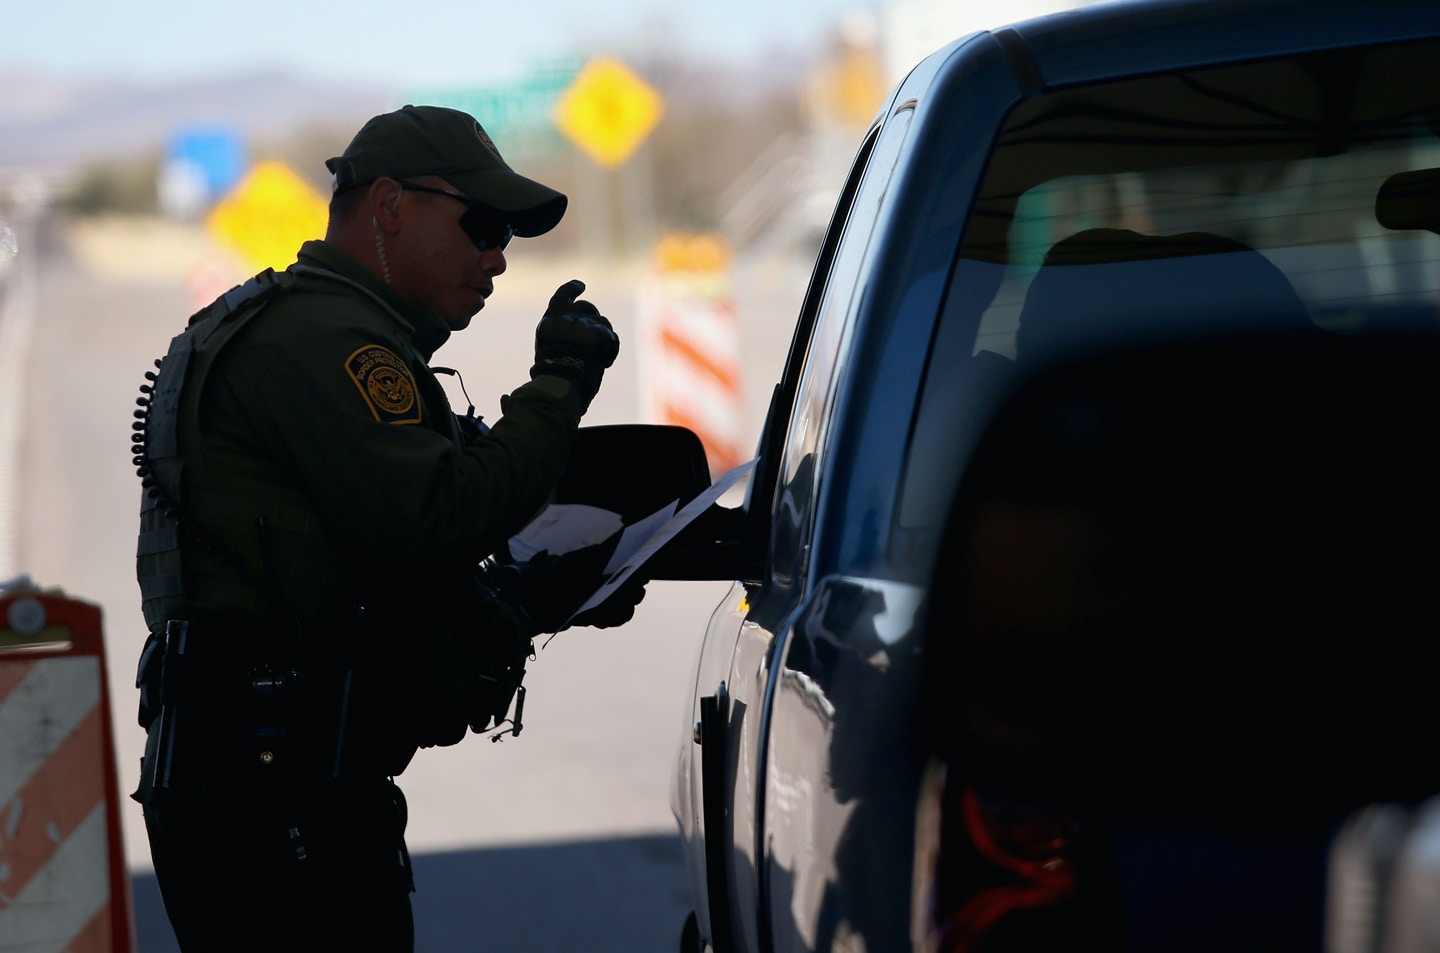 NOGALES, AZ - FEBRUARY 26:  A U.S. Border Patrol agent speaks to a driver at a checkpoint from Mexico into the United States on February 26, 2013 north of Nogales, Arizona. Some 15,000 people cross between Mexico and the U.S. each day in Nogales, Arizona's busiest border crossing. U.S. Customs and Border Patrol agents are tasked with stopping the illegal flow of drugs into the U.S. (Photo by John Moore/Getty Images)